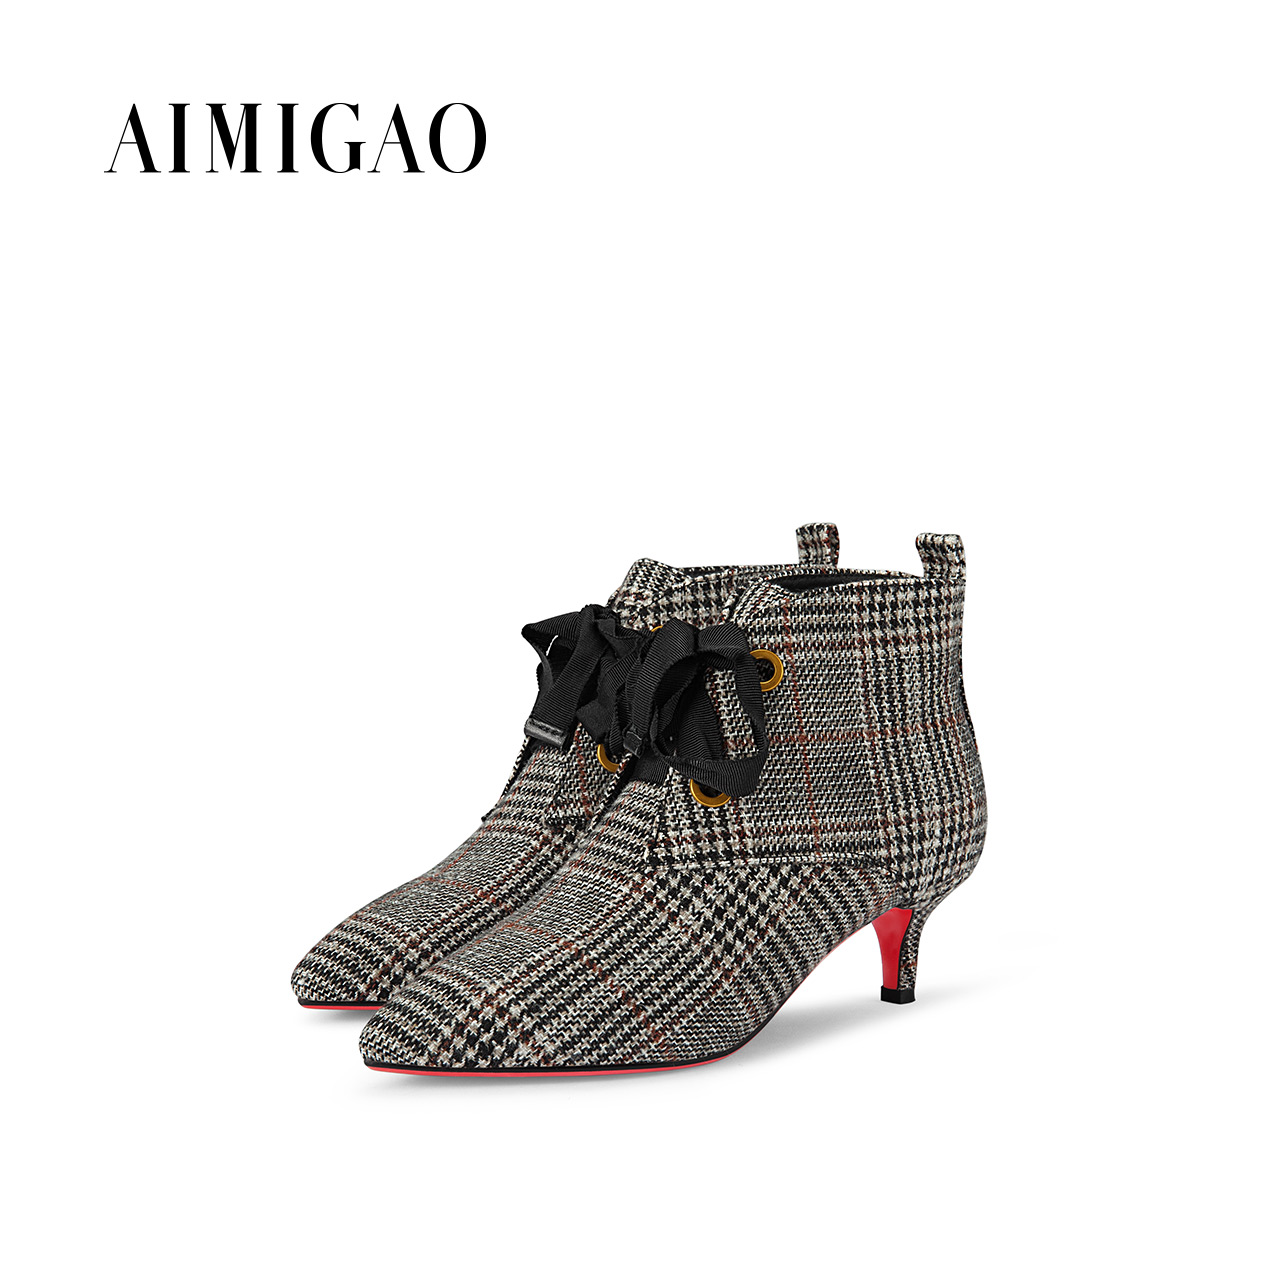 AIMIGAO 2017 winter new pointed toe Fashion Lace up Women Boots ladies lattice cloth women ankle boots Women Shoes british style british style lace up and round toe design women s boots